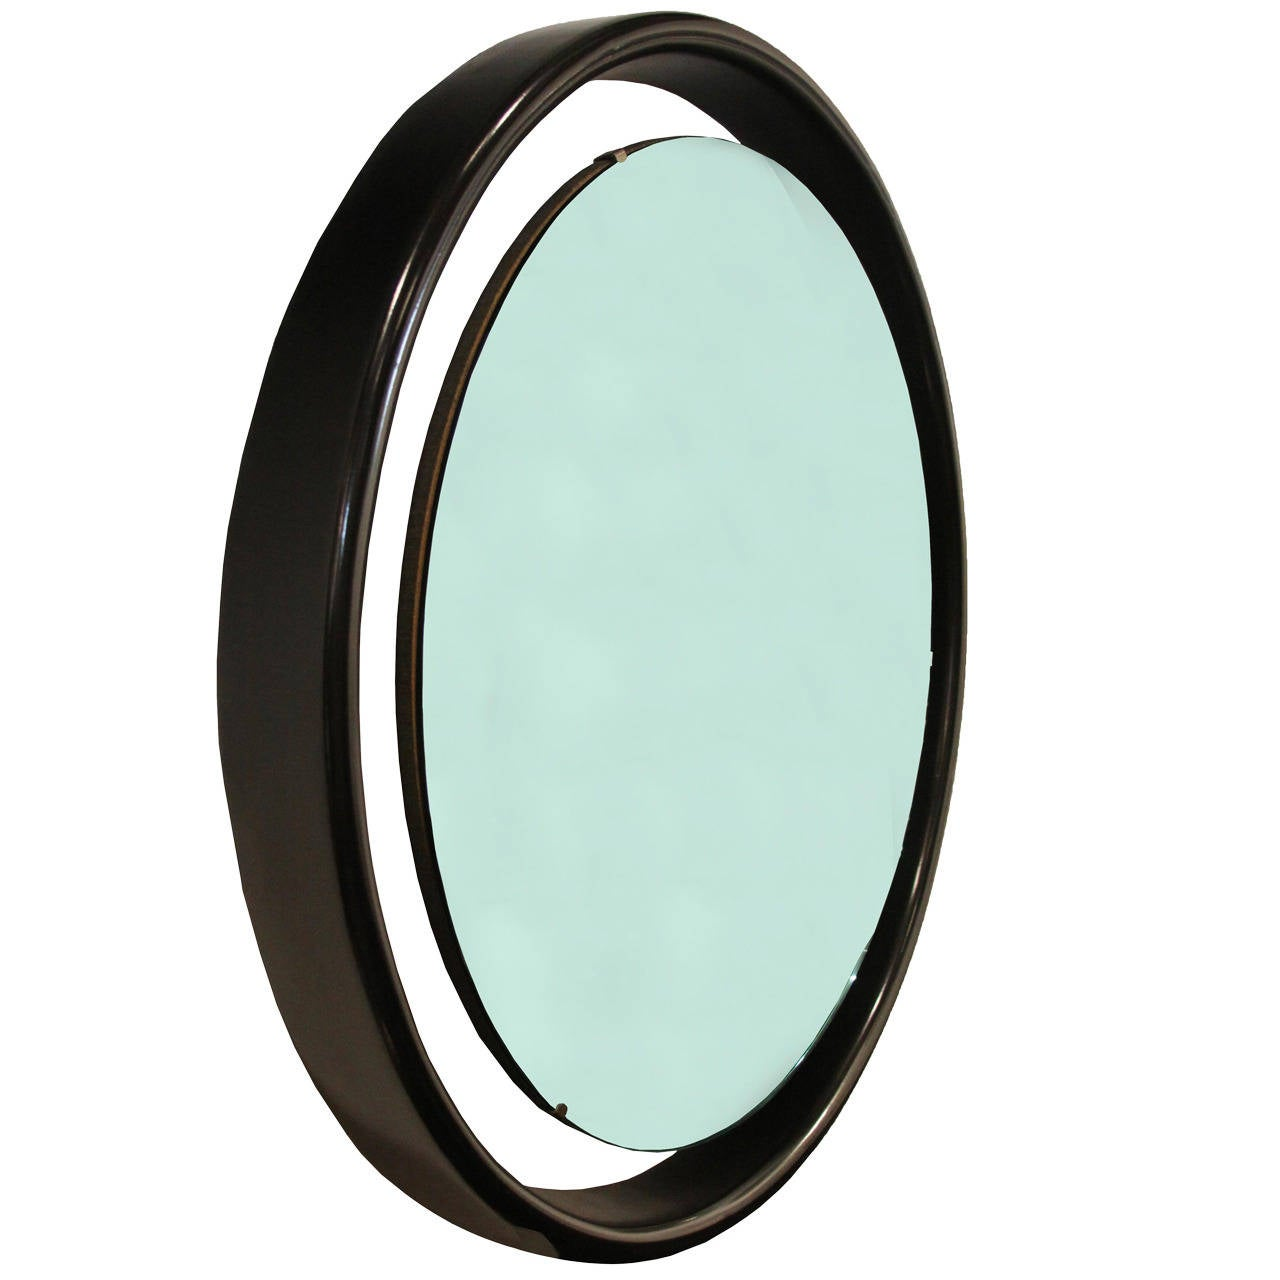 Floating round mirror with black frame for sale at 1stdibs for Round mirror